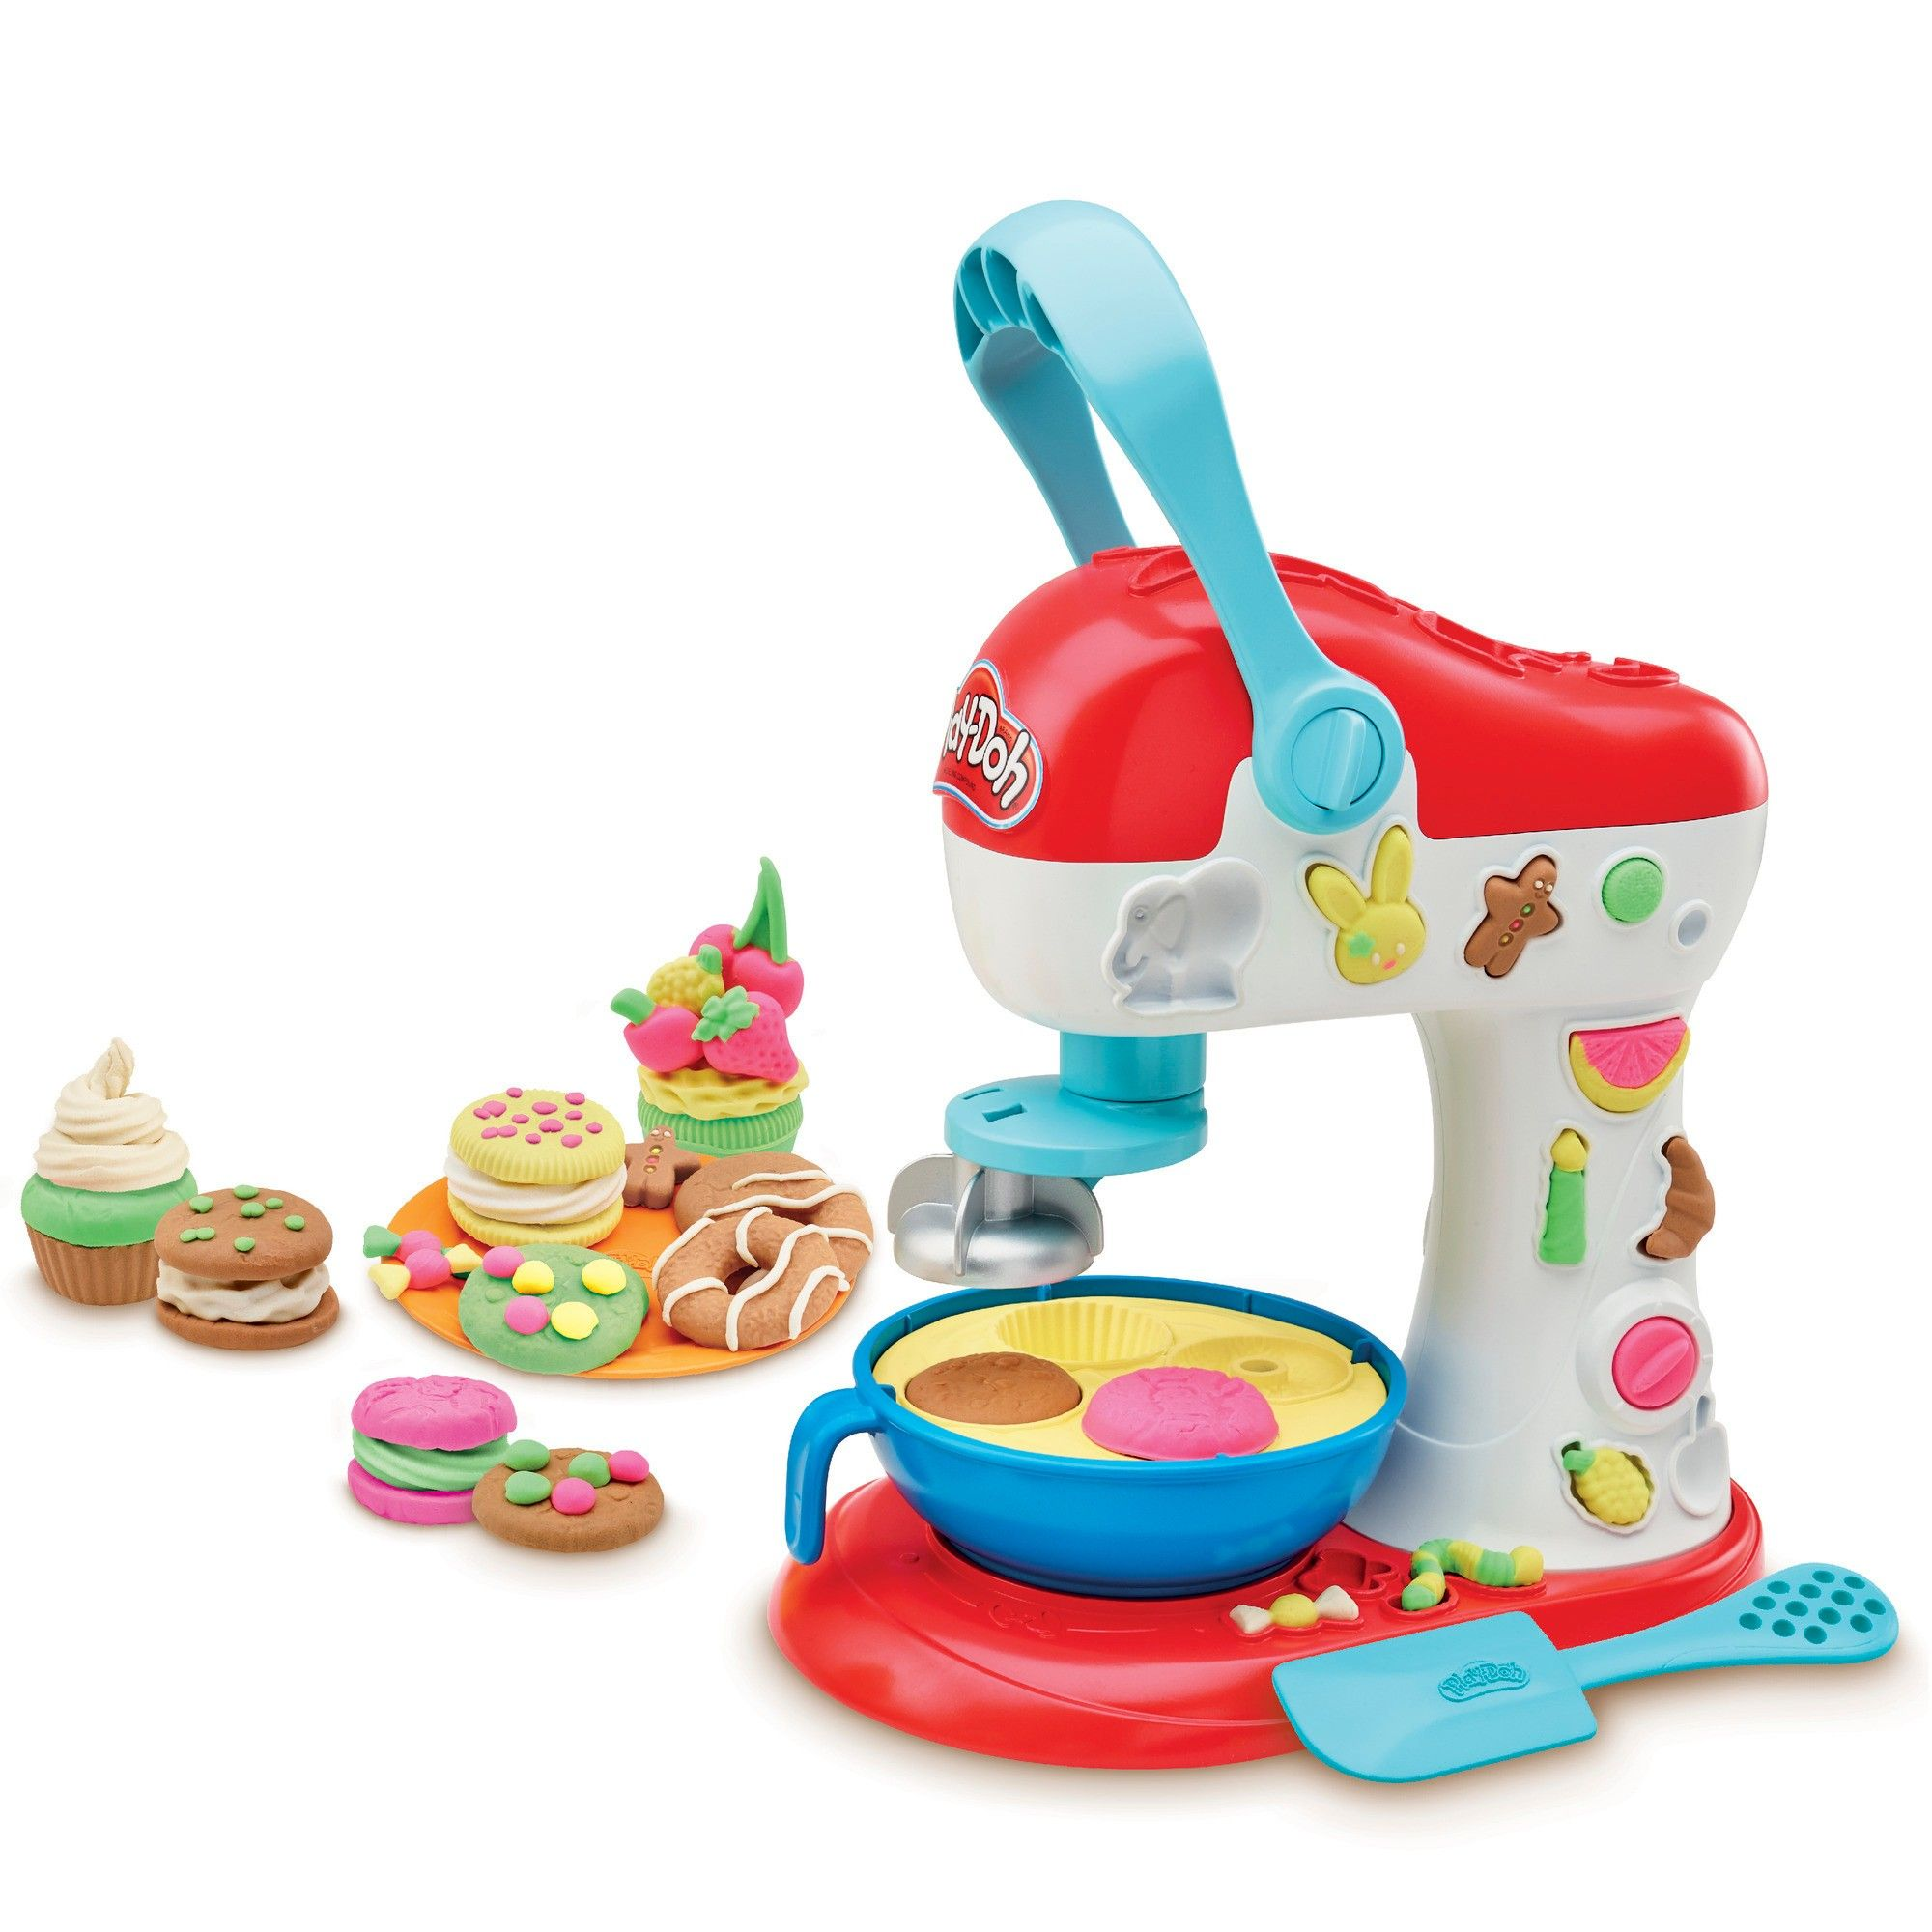 Play Doh Kitchen Creations Spinning Treats Mixer Play Doh Kitchen Play Doh Kids Toys